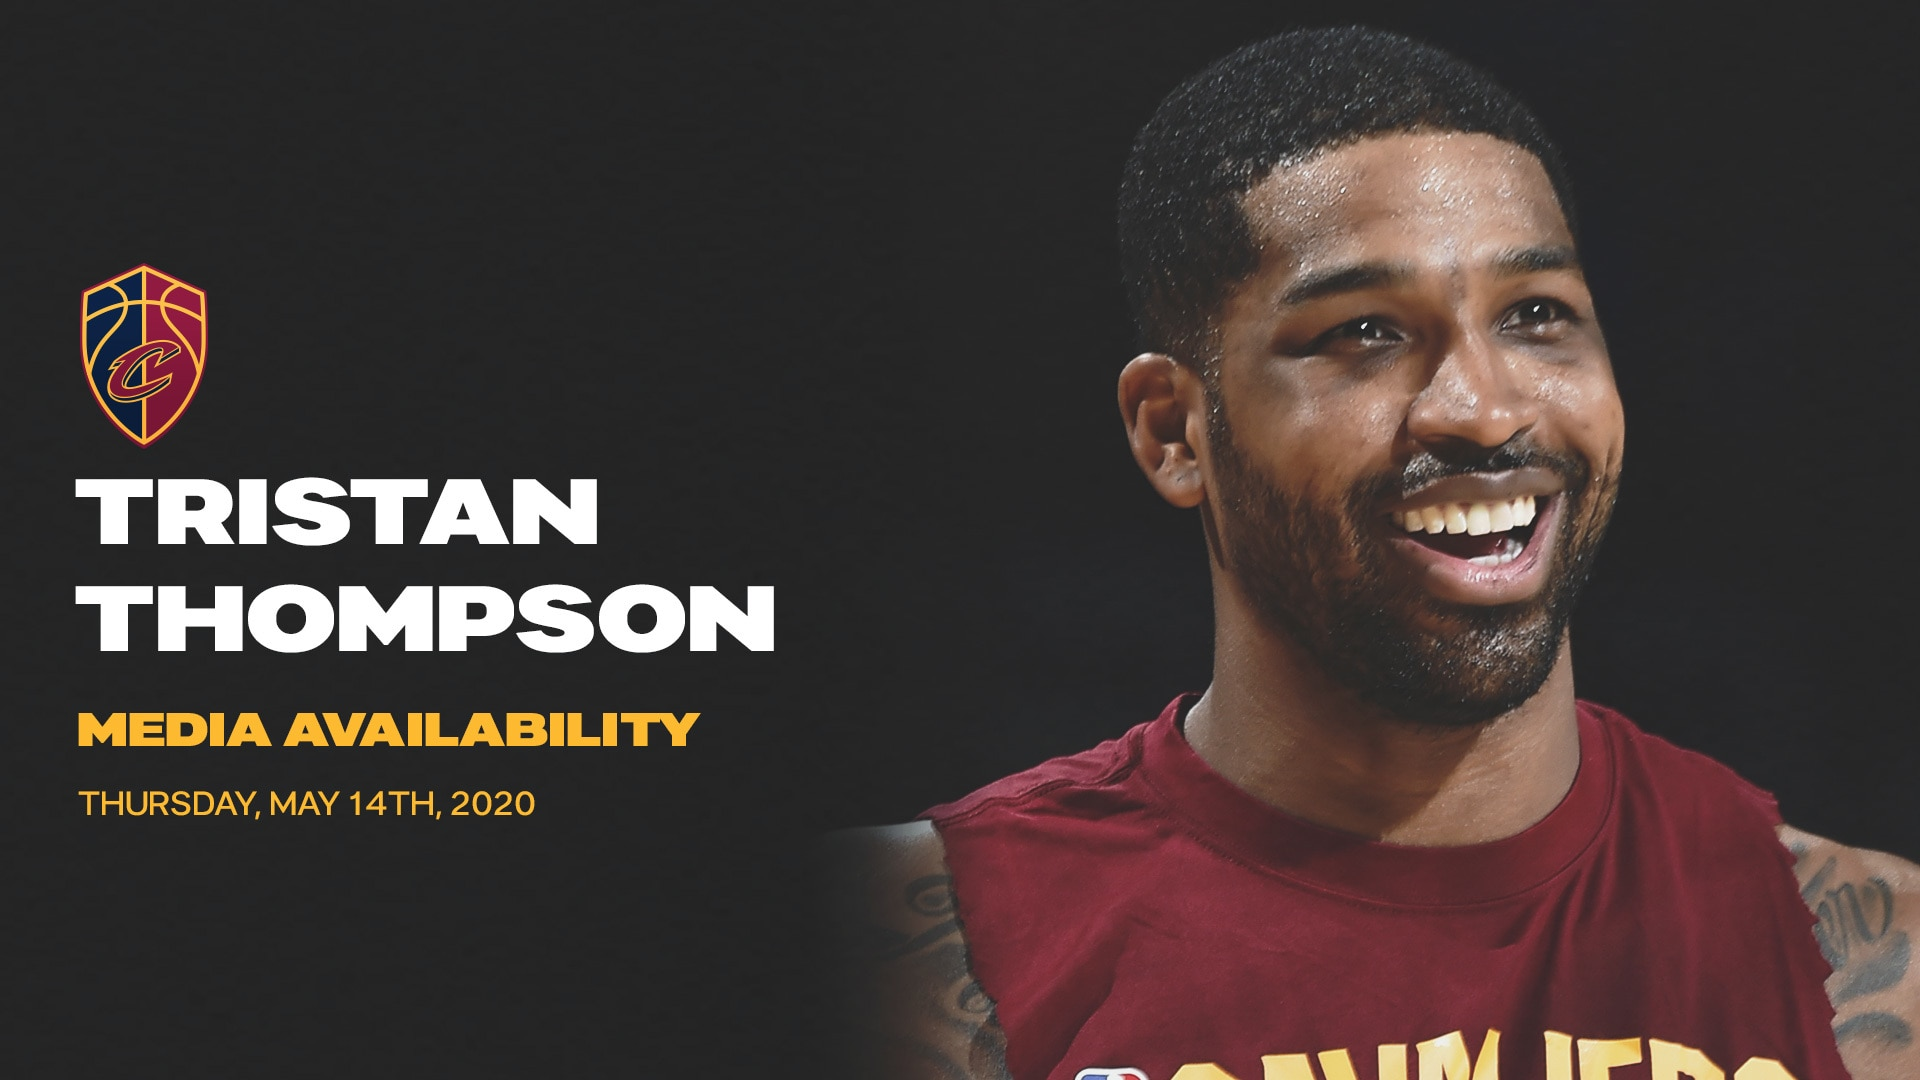 Conference Call with Tristan Thompson